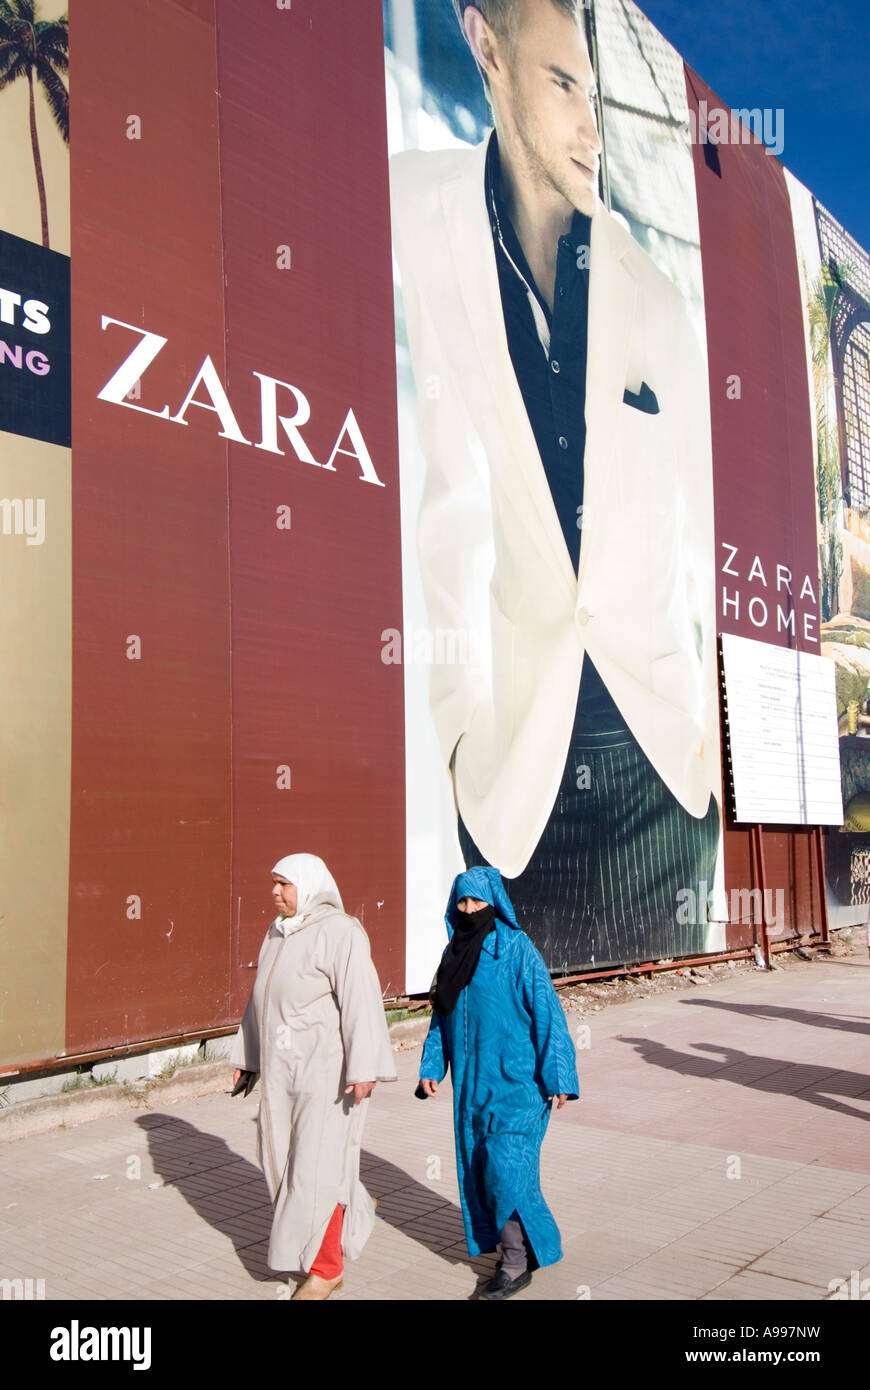 Placard advertising a European clothes chain store Zara in Gueliz Marrakesh Morocco - Stock Image